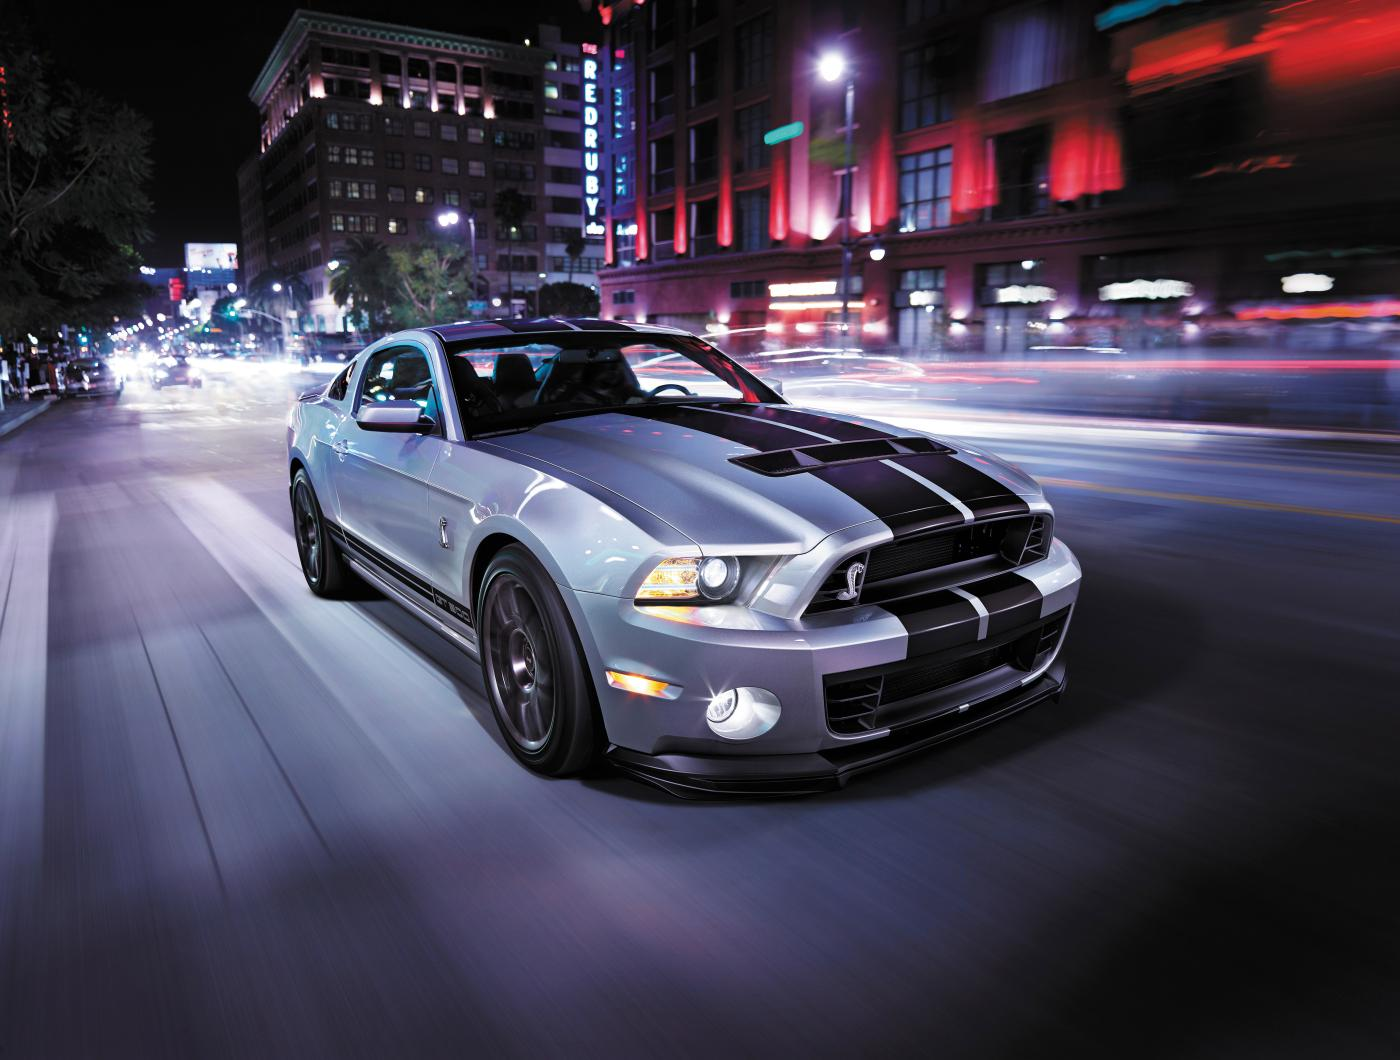 Ford Mustang Shelby GT500 (2014)